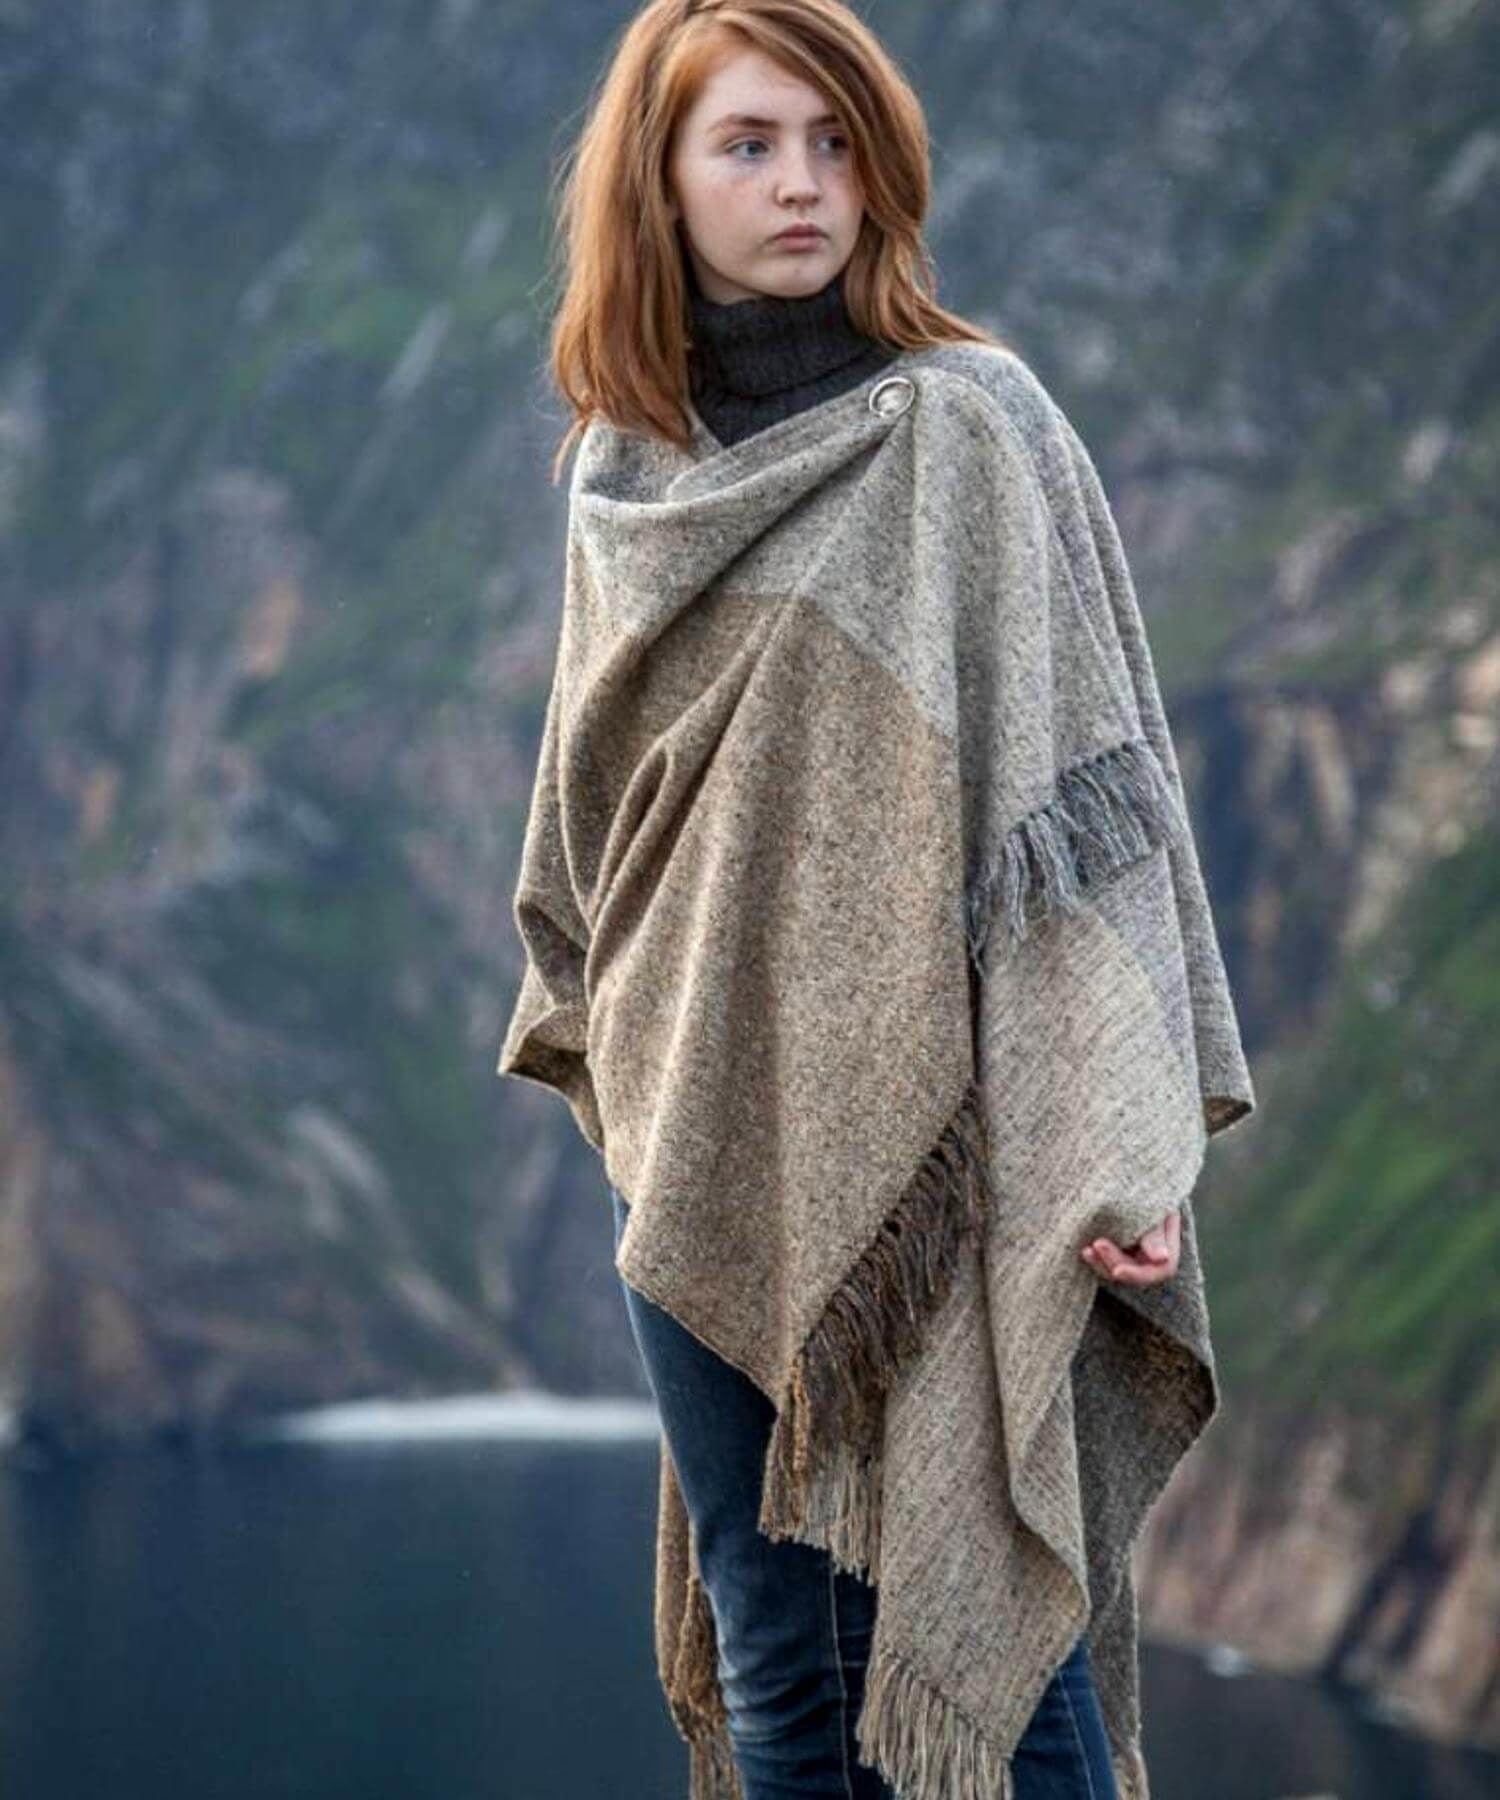 Handwoven Ruana - Berries Studio Donegal Ladies Capes Shawls & Ponchos